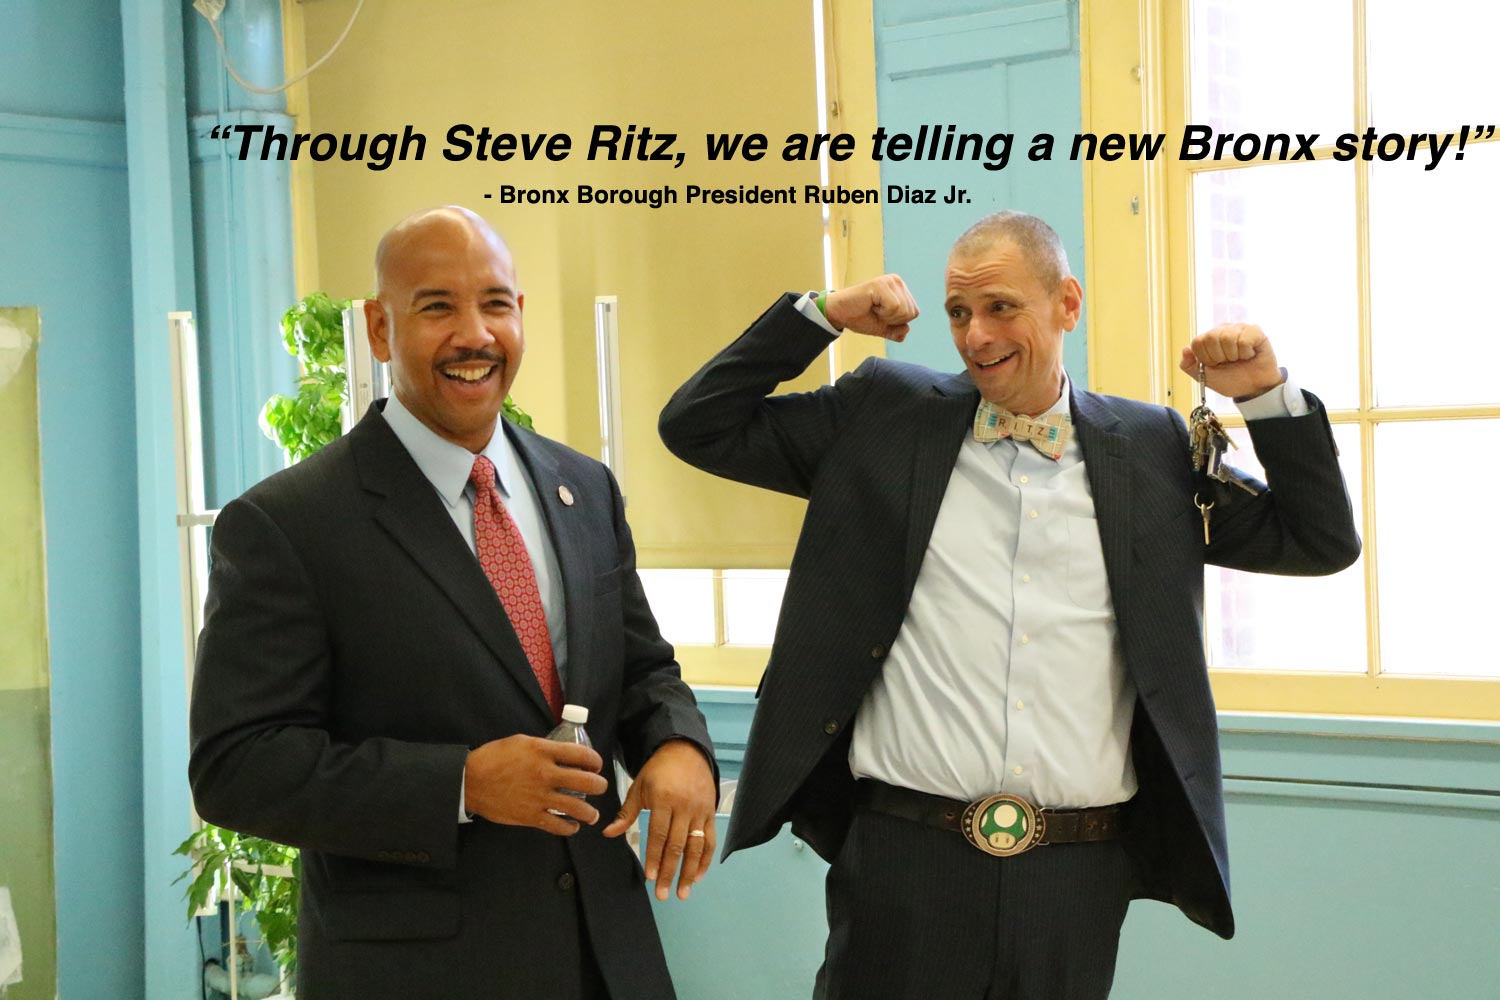 Bronx Borough President Ruben Diaz Jr Testimonial